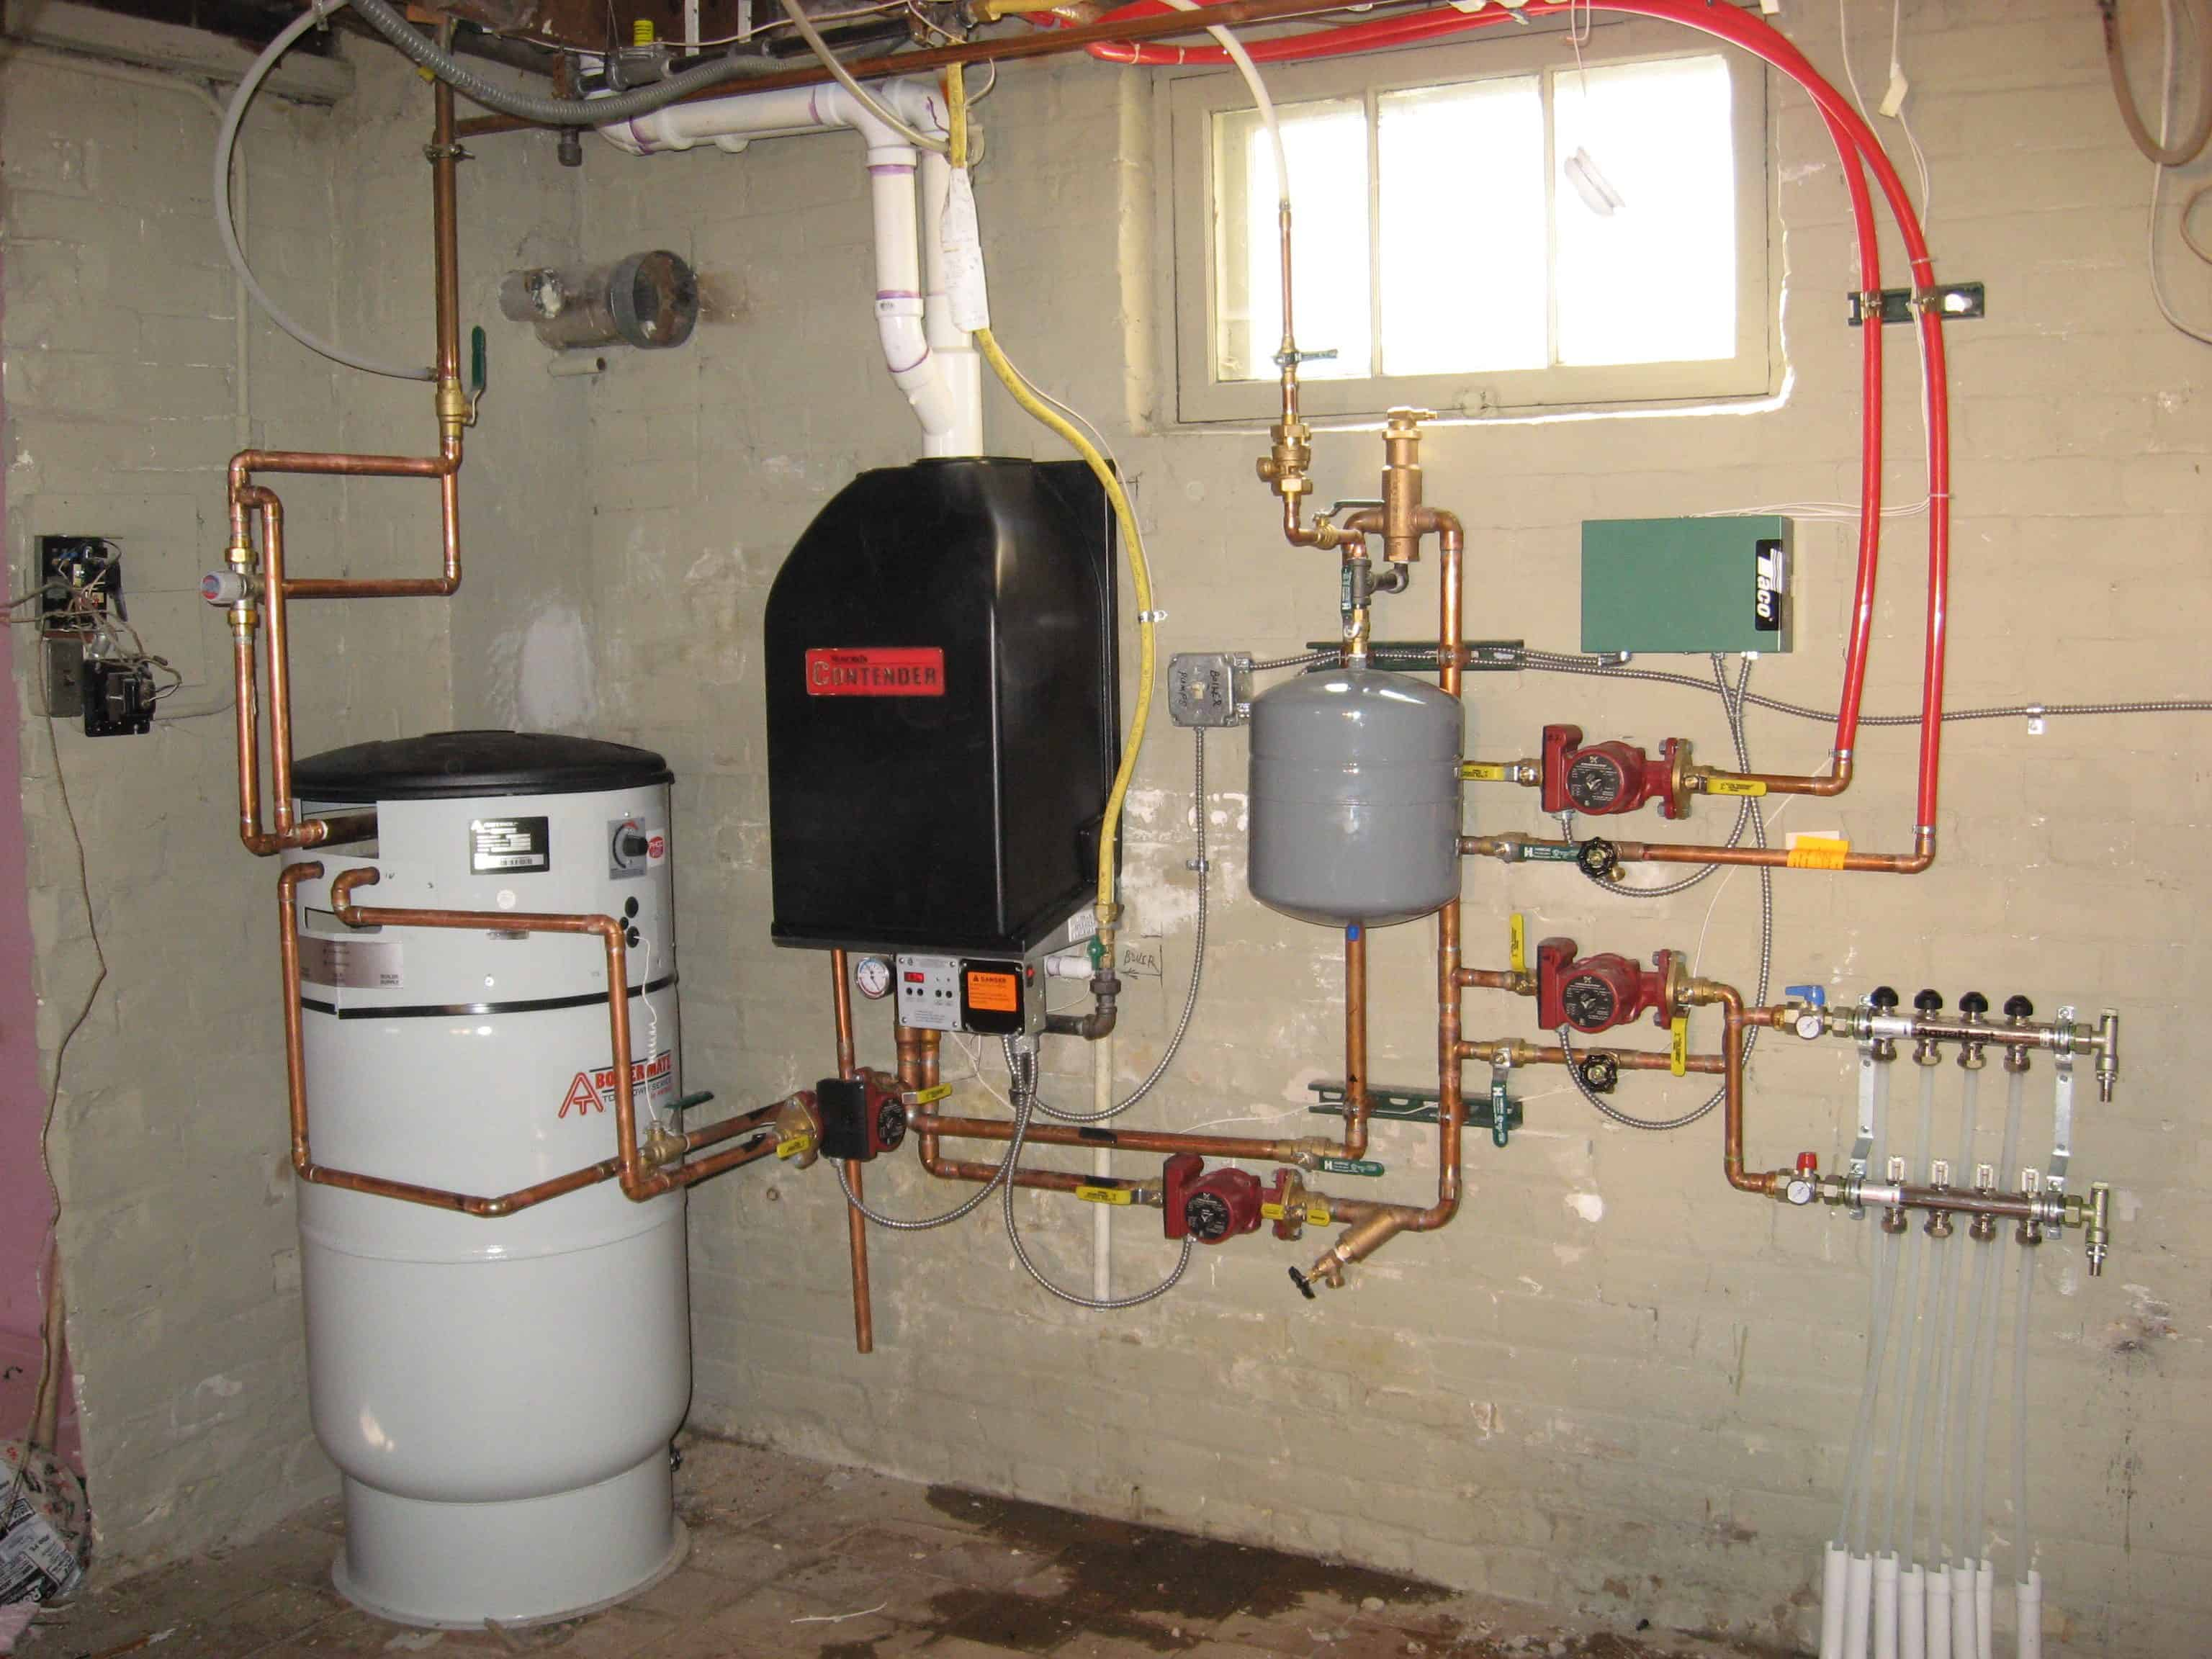 Installation of heating for the home 92